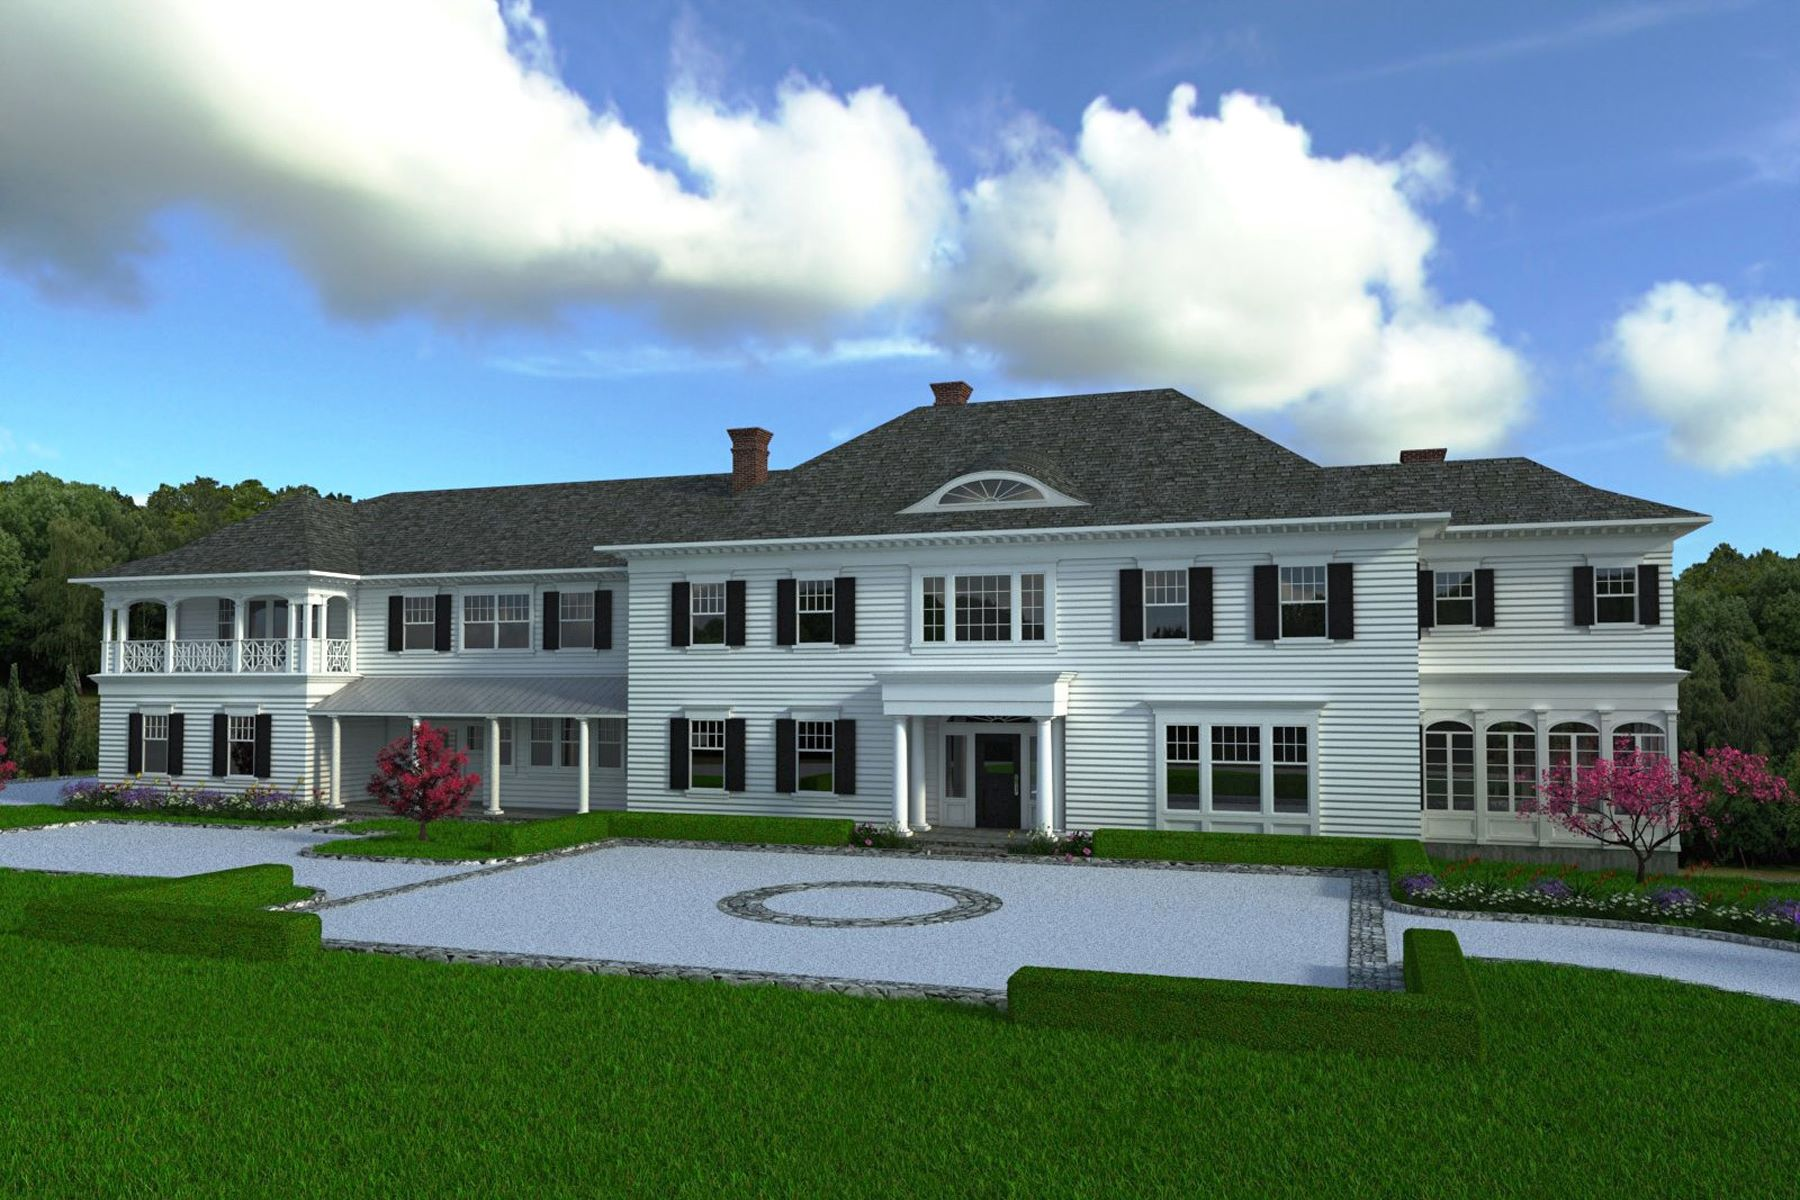 Single Family Home for Sale at Refined Elegance and Luxurious Amenities 549 Oenoke Ridge New Canaan, Connecticut 06840 United States